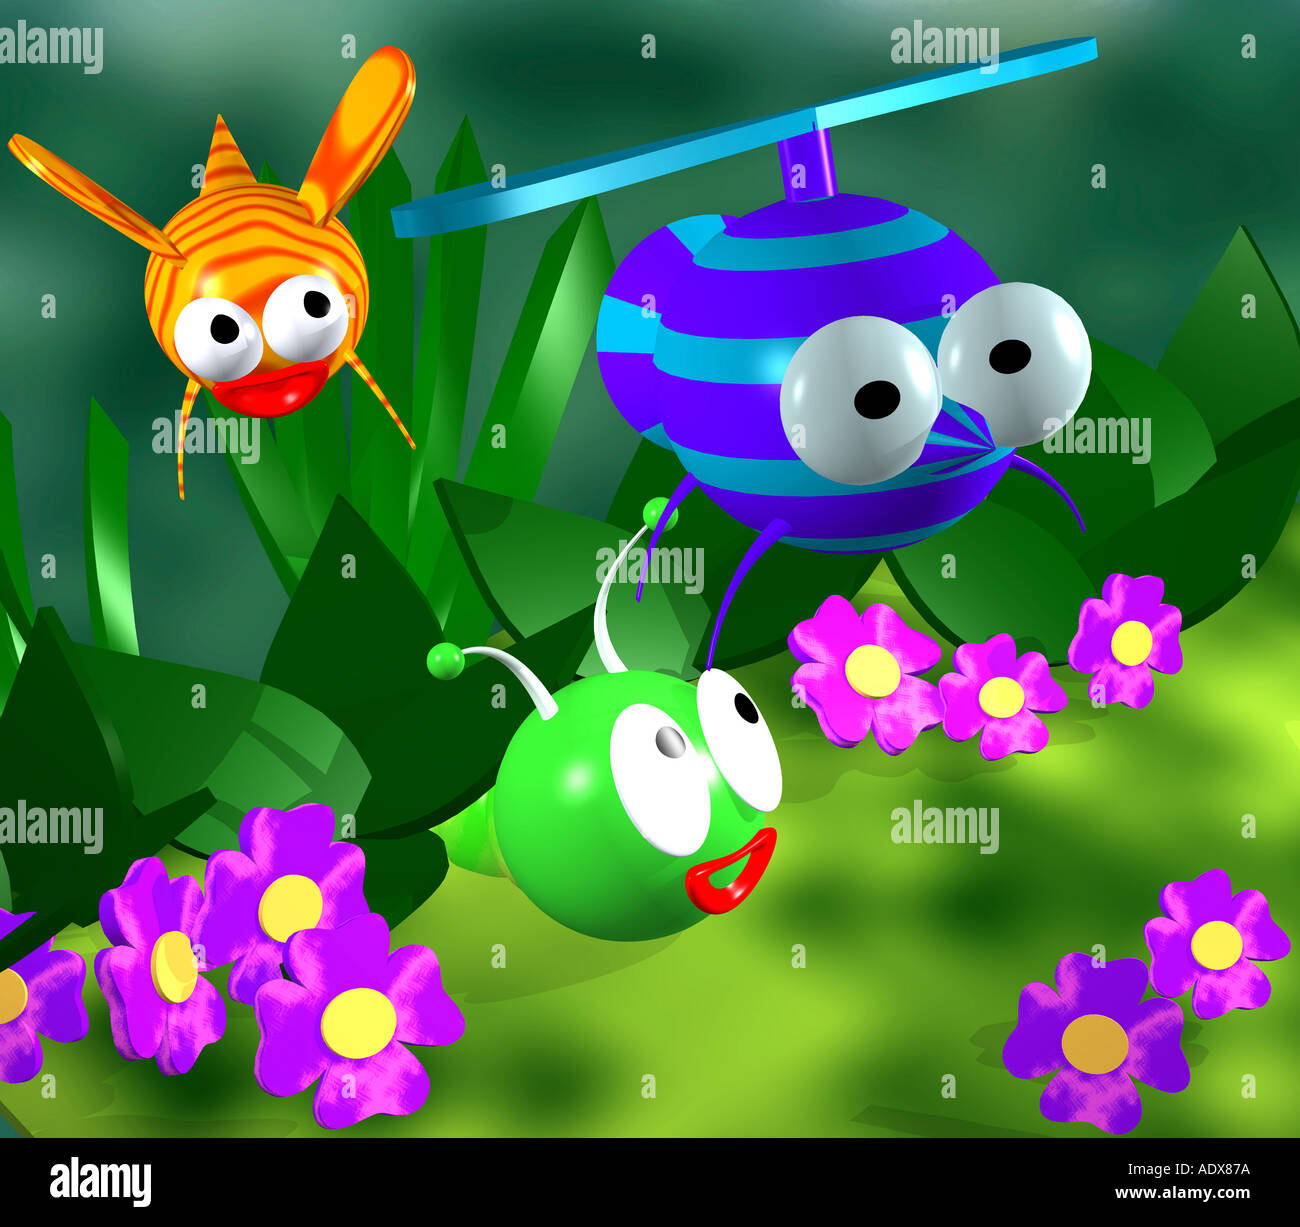 Illustrations computer graphic cg characters insect insects stylized bee mosquito flower flowers cartoon infantile childish char - Stock Image